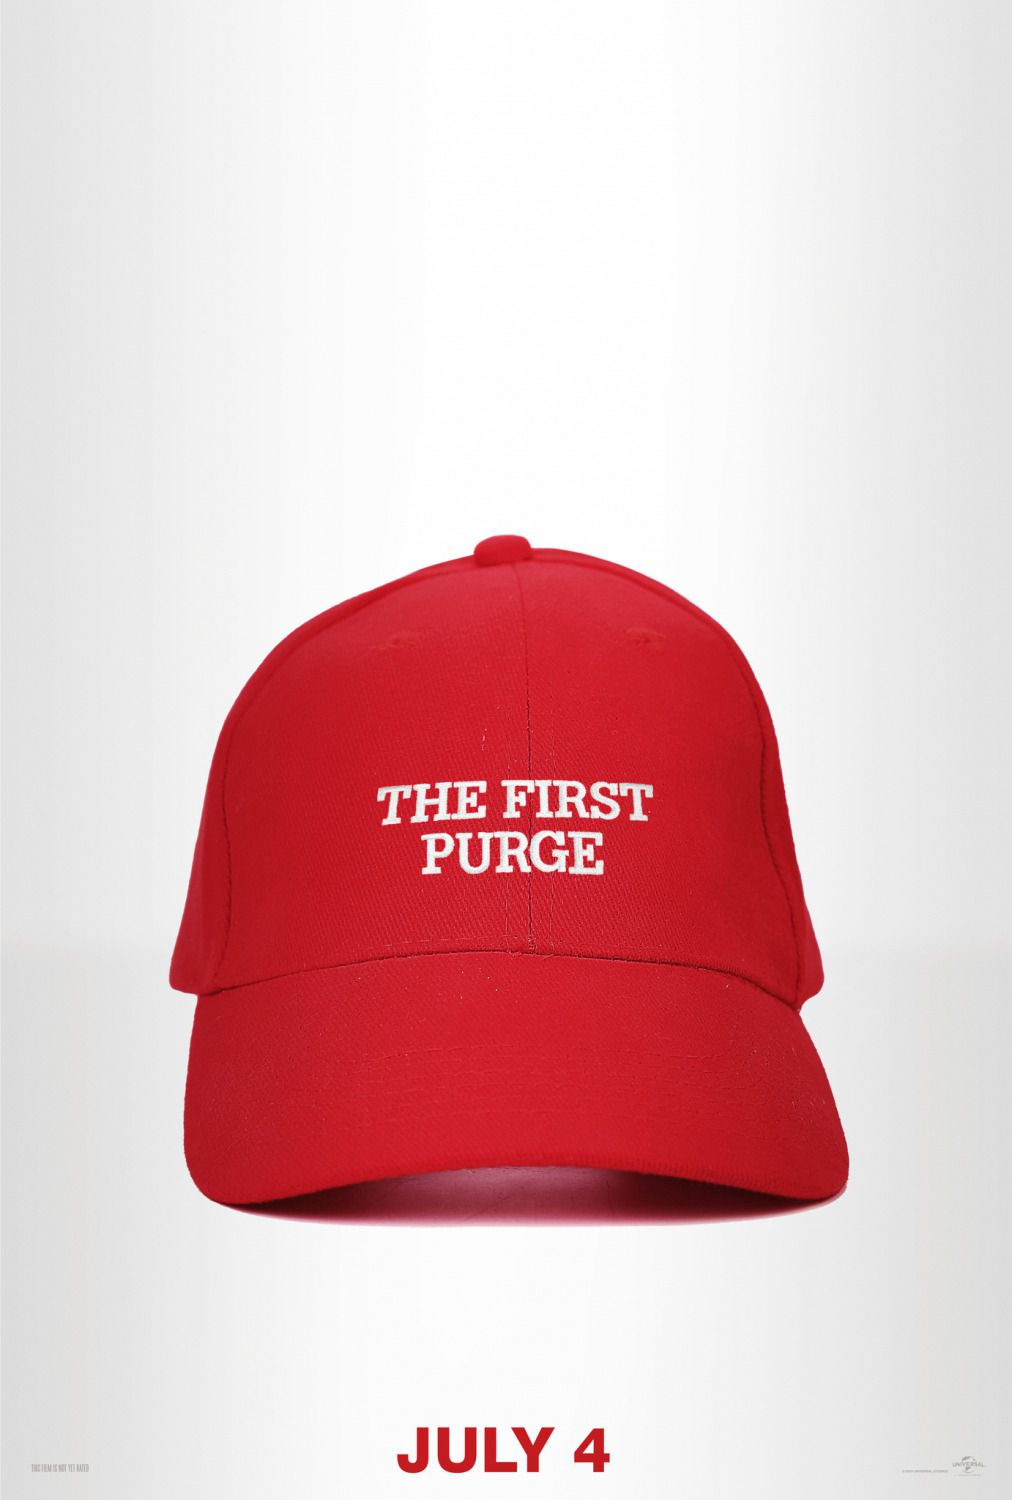 The First Purge - red hat film poster 2018